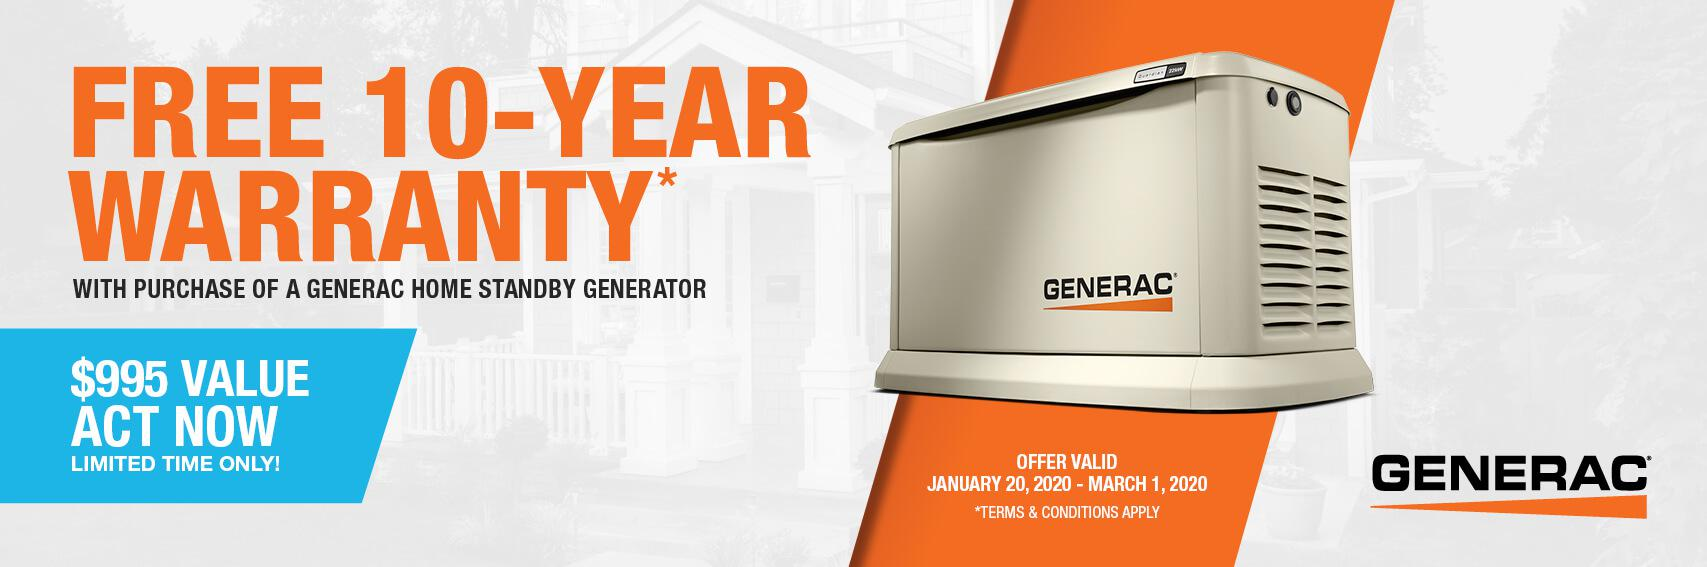 Homestandby Generator Deal | Warranty Offer | Generac Dealer | Columbia, MS